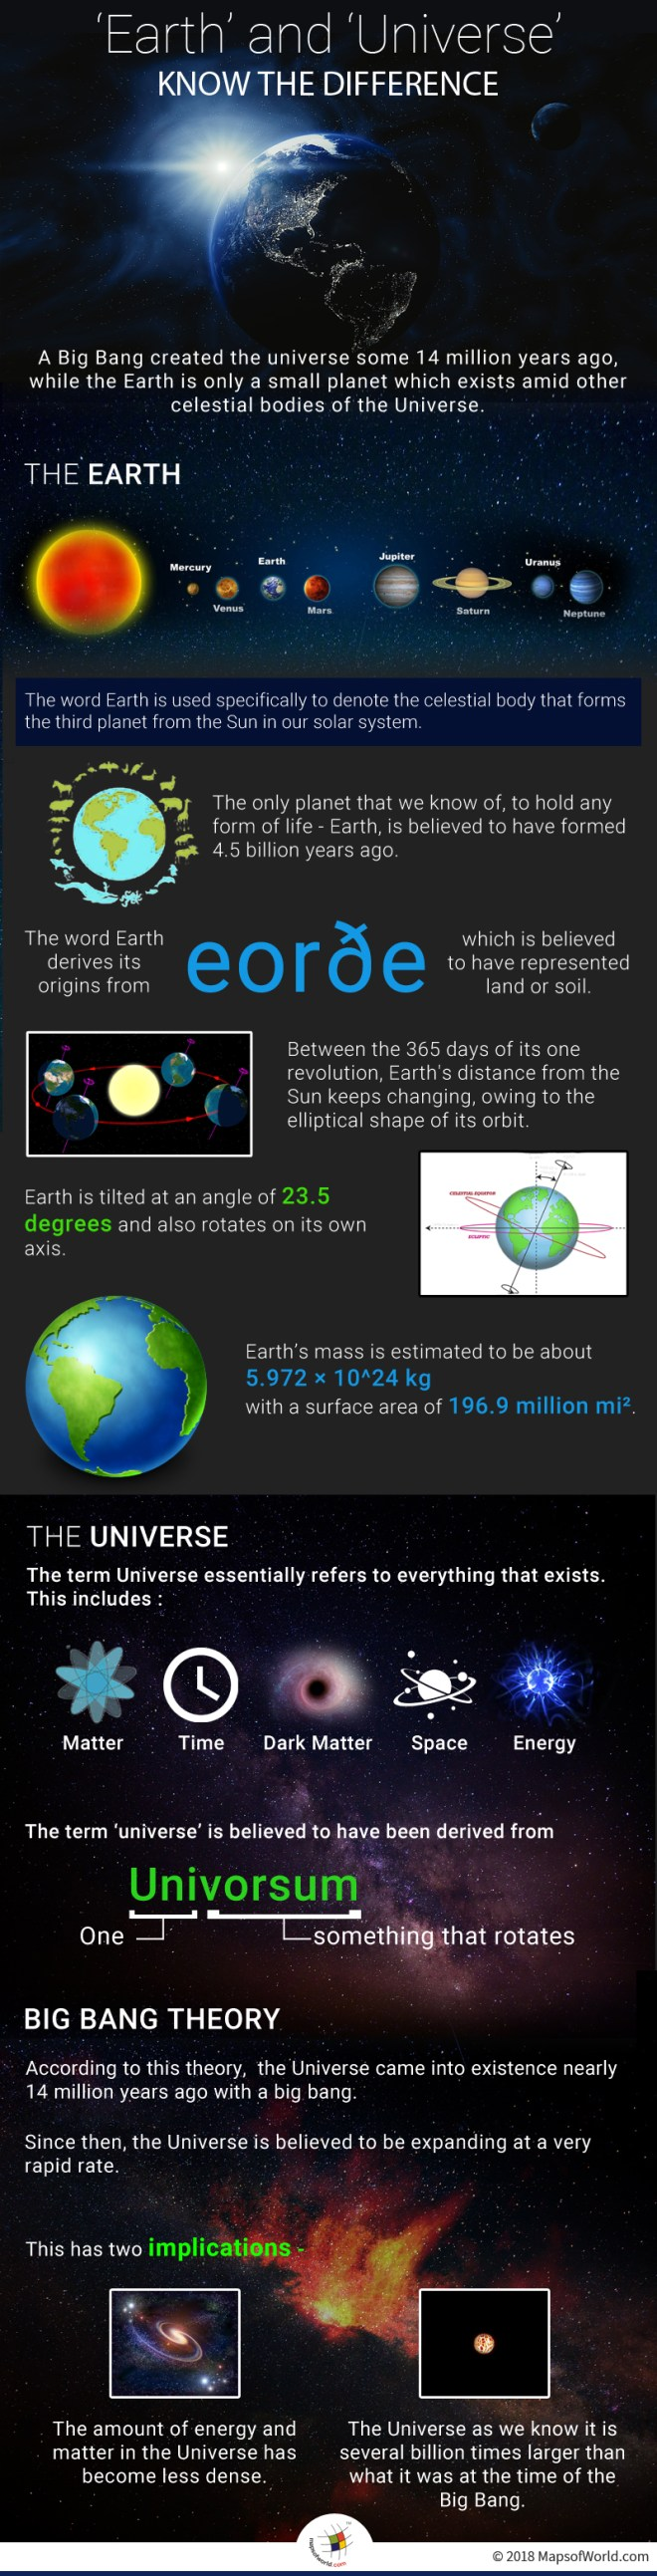 Difference between Earth and Universe